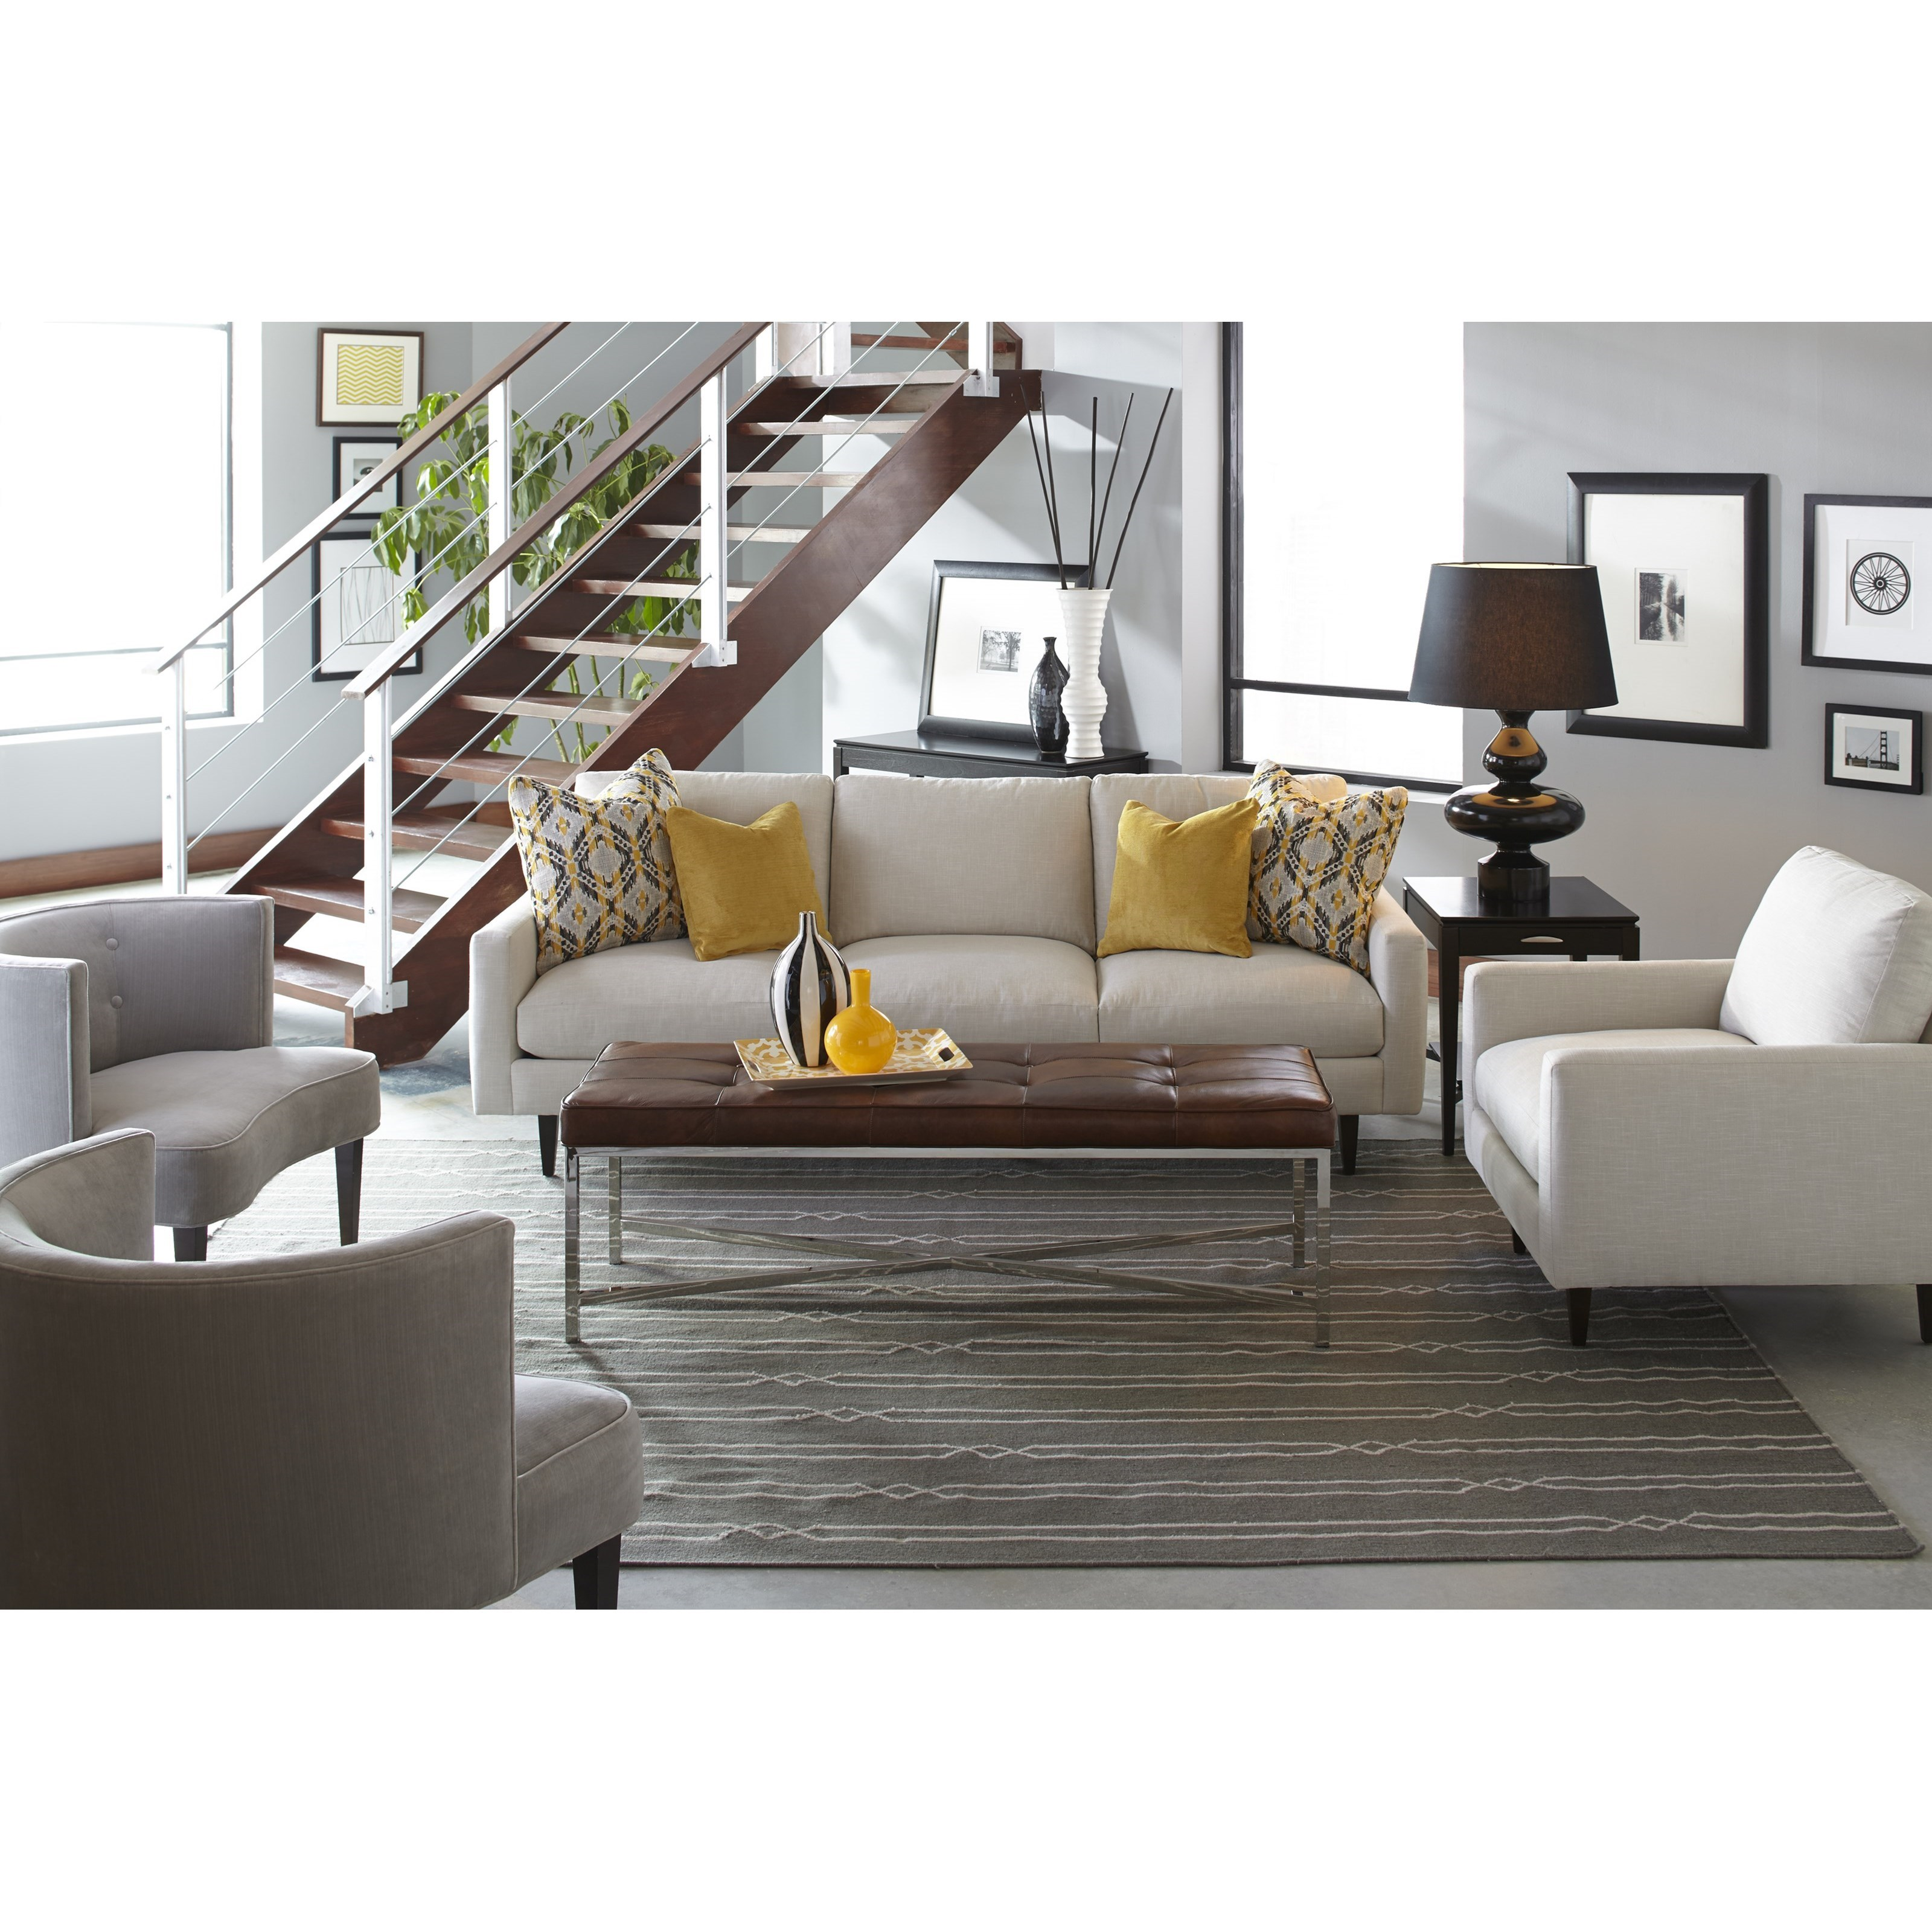 Oslo Stationary Living Room Group by Robin Bruce at Malouf Furniture Co.